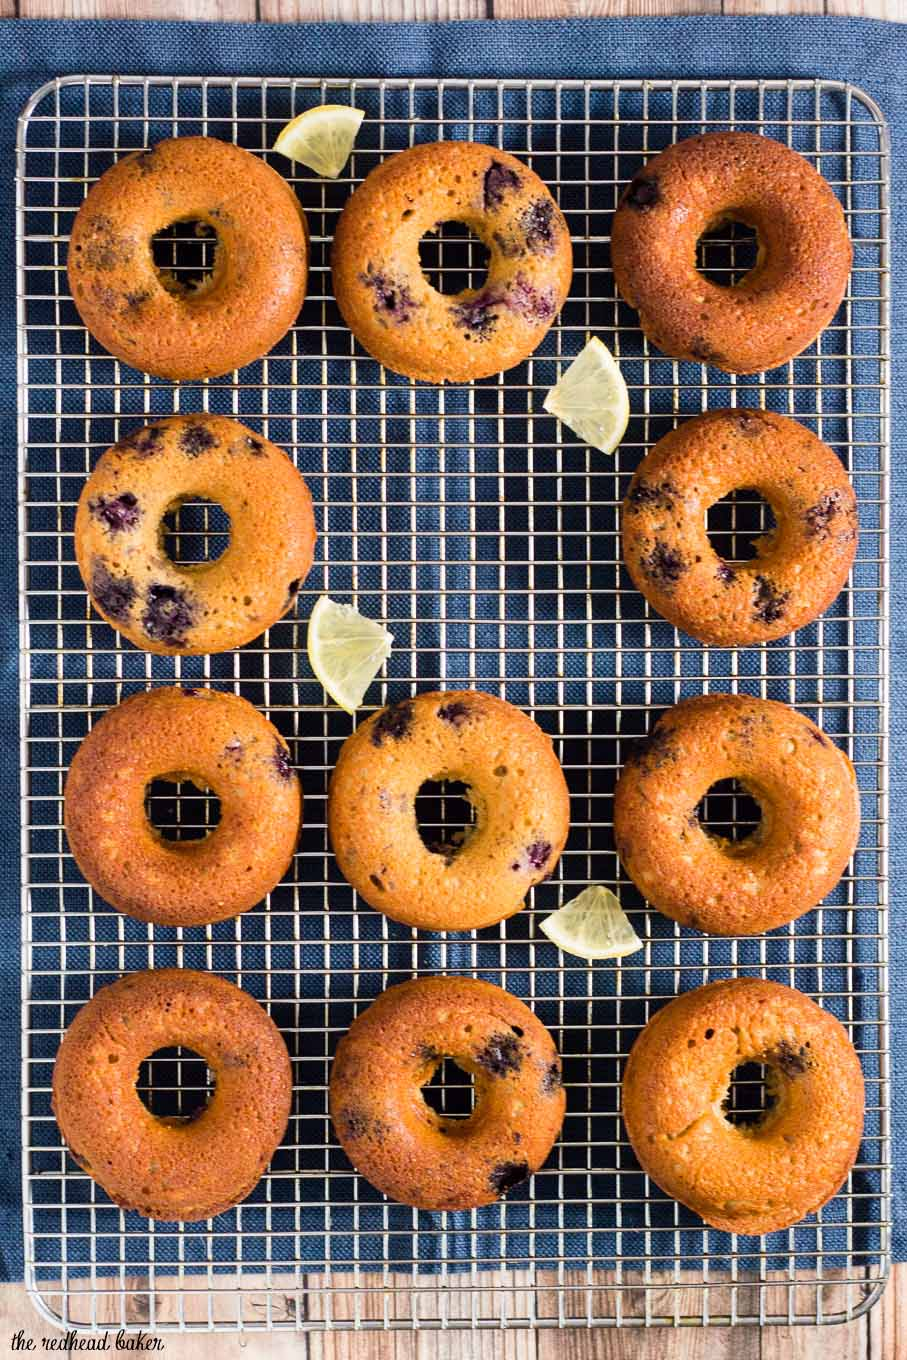 A new year often brings a resolution of eating healthier. I lightened up these blueberry lemon donuts so you can snack guilt-free!